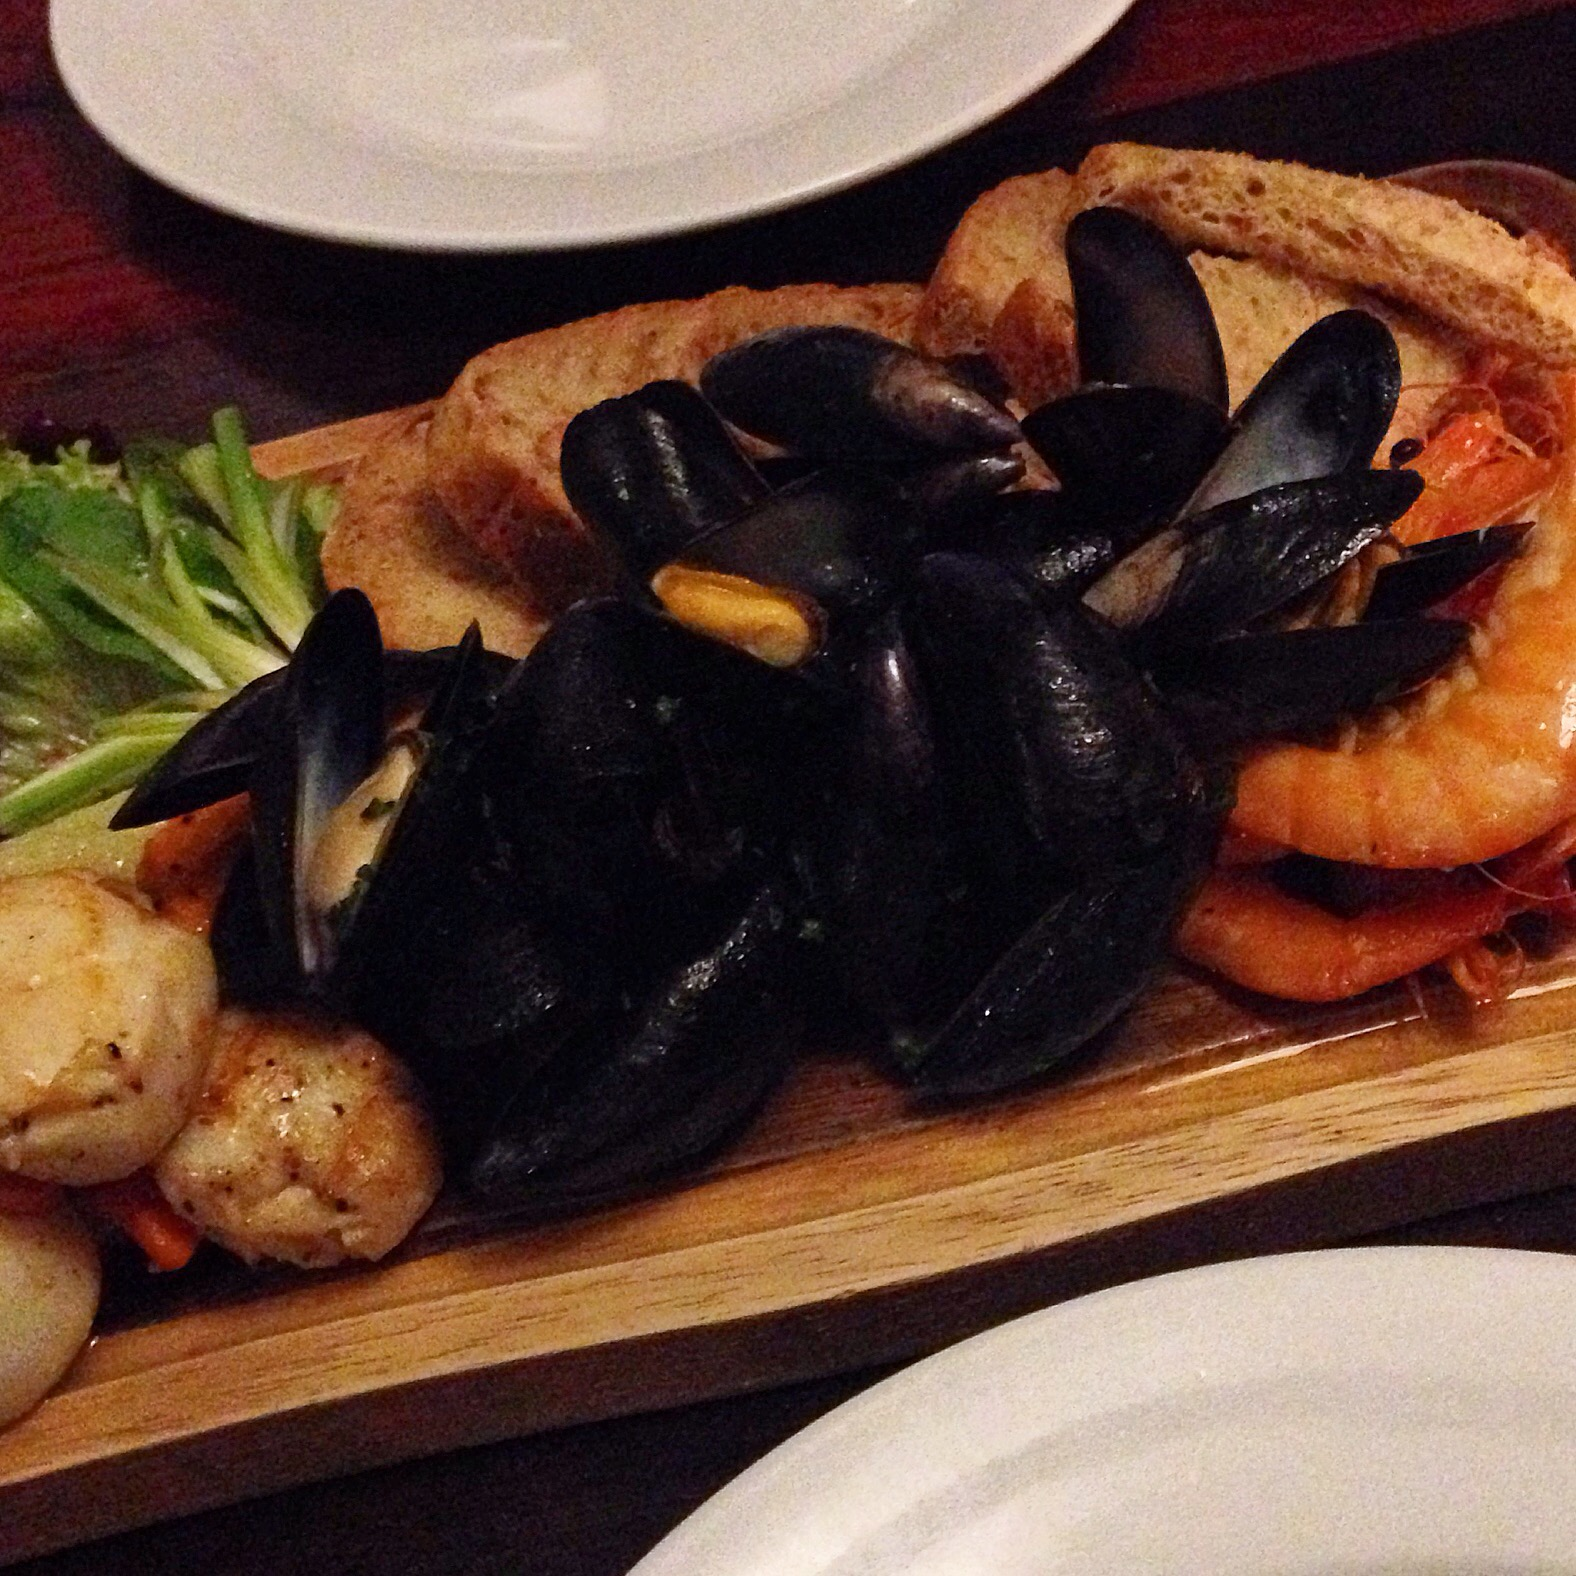 The seafood platter at The Ship Inn